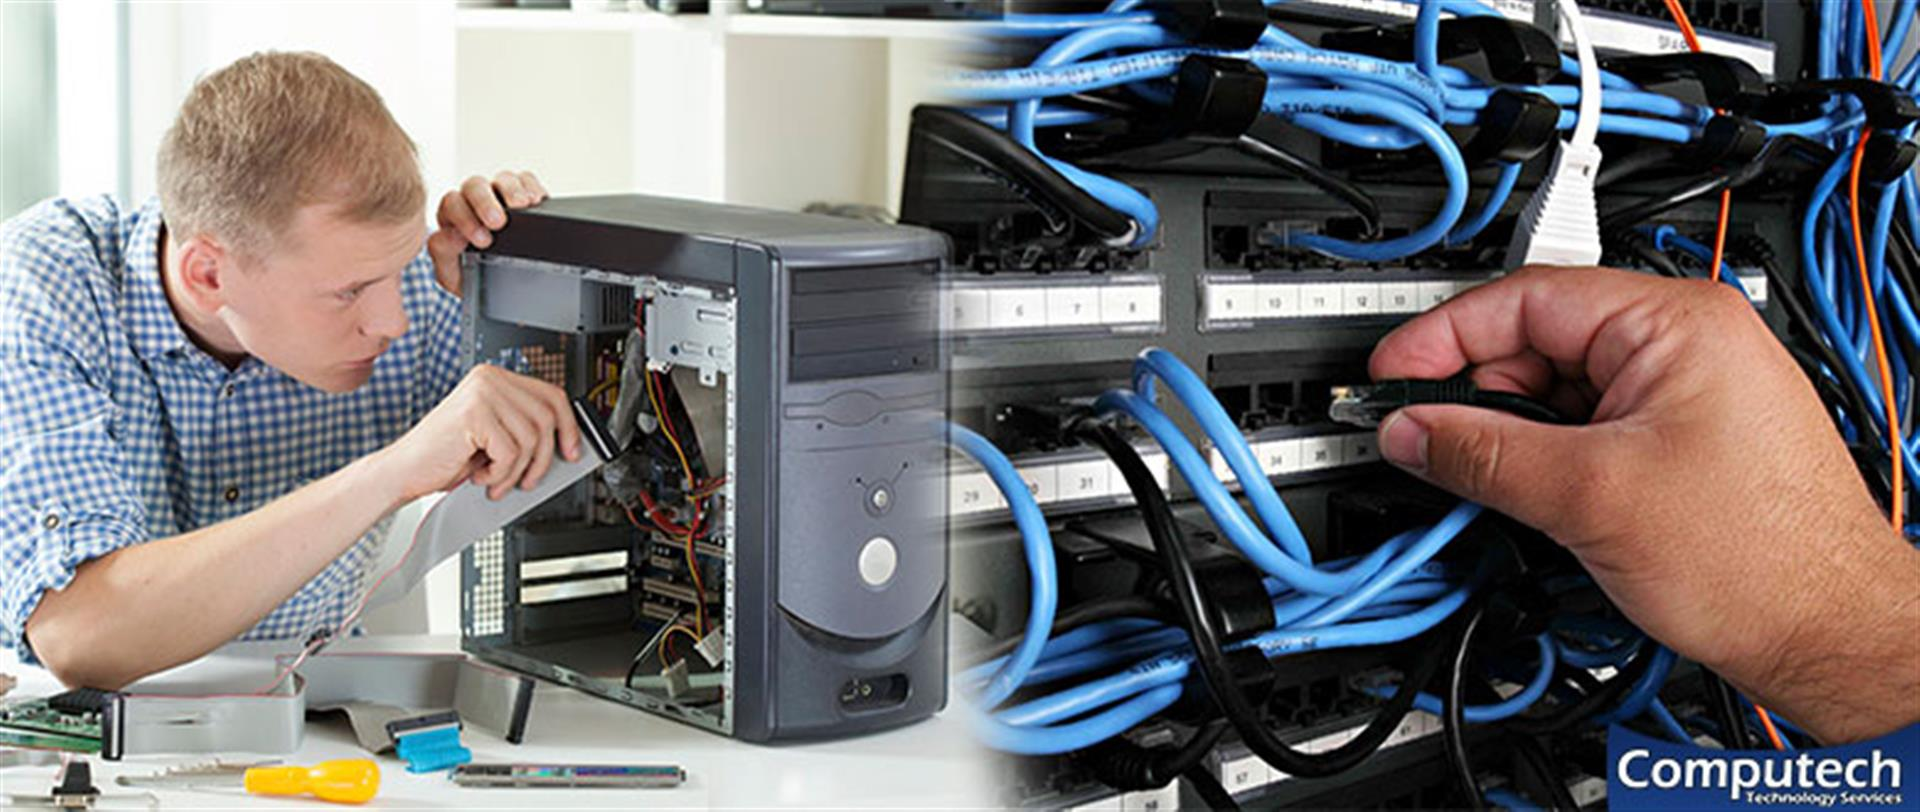 Stockbridge Georgia On-Site Computer PC & Printer Repair, Network, Voice & Data Cabling Contractors